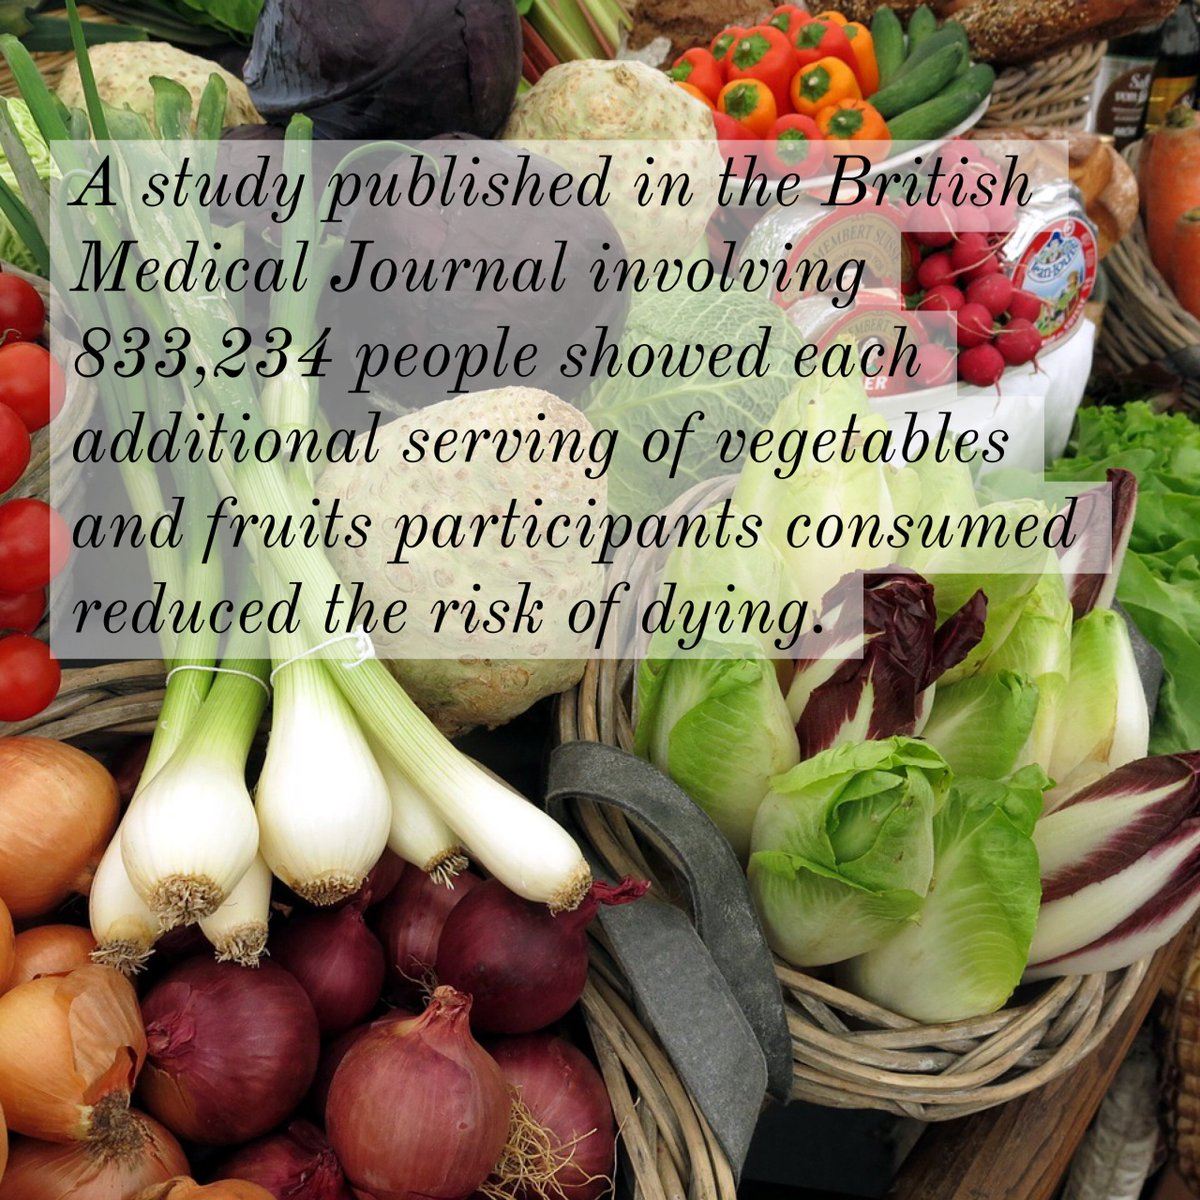 A compelling reason to eat your #vegetables! #healthyeating<br>http://pic.twitter.com/oHELOgg5PT